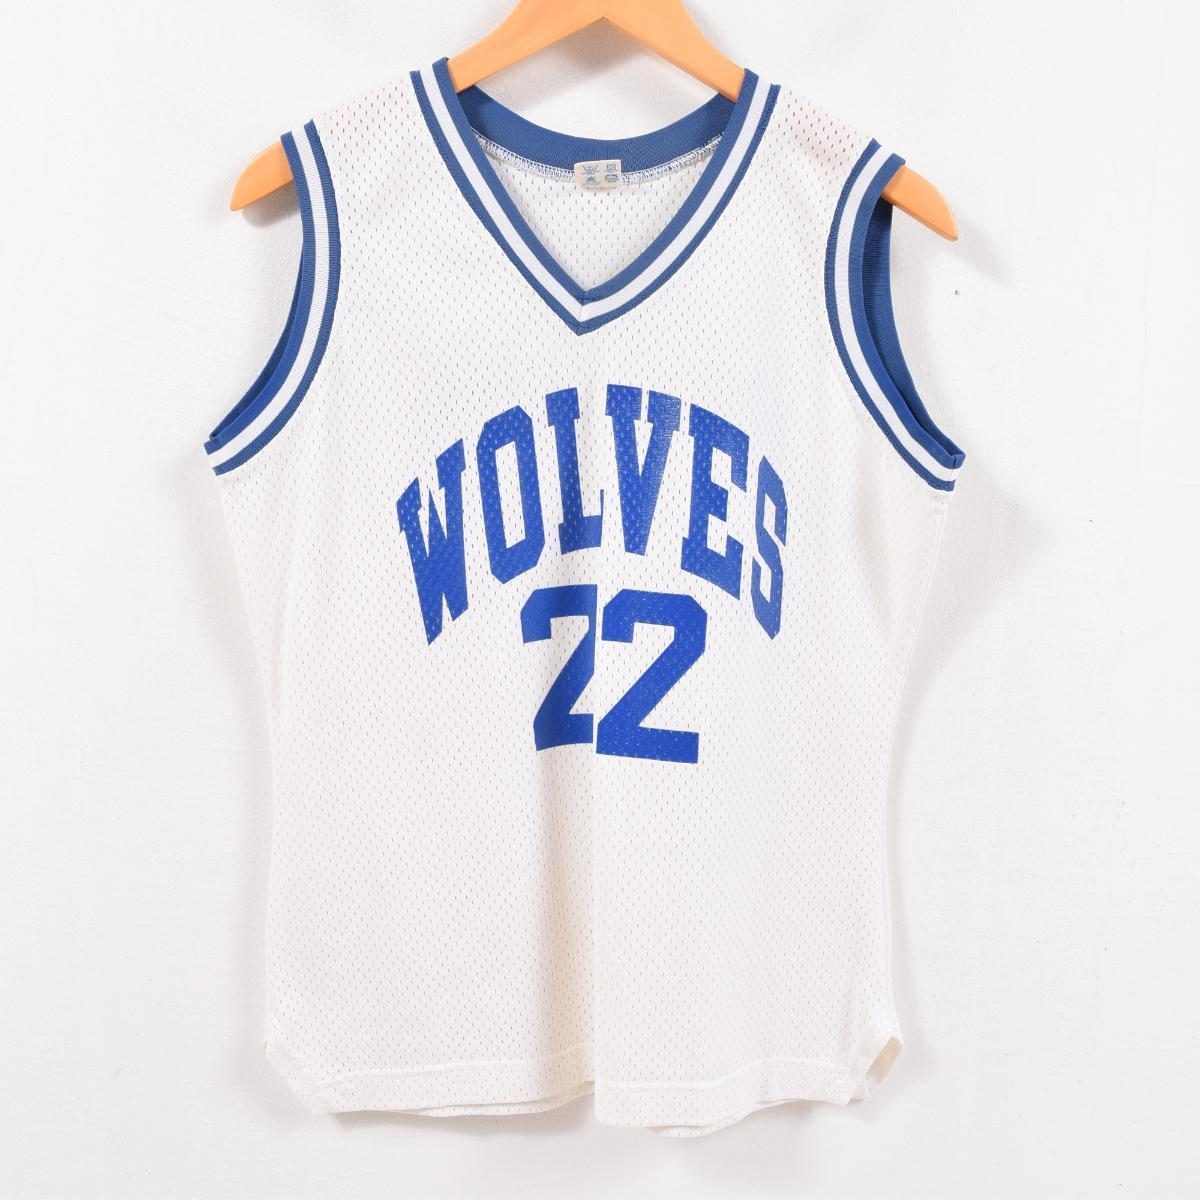 2e01bd5b Lady's M vintage /wbd9983 in the 80s made in champion Champion tricot tag  WOLVES 22 ...